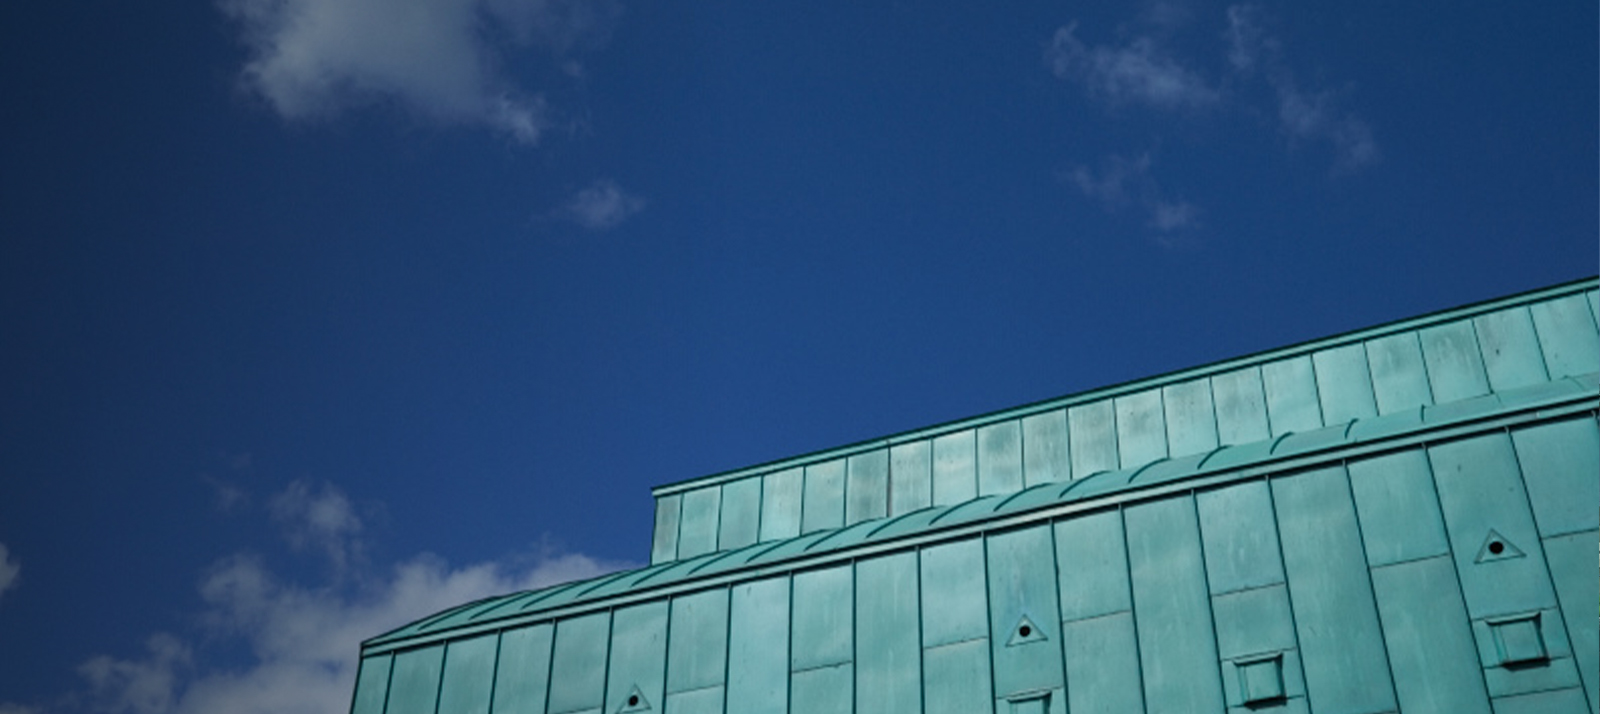 Lakeside green roof against blue sky